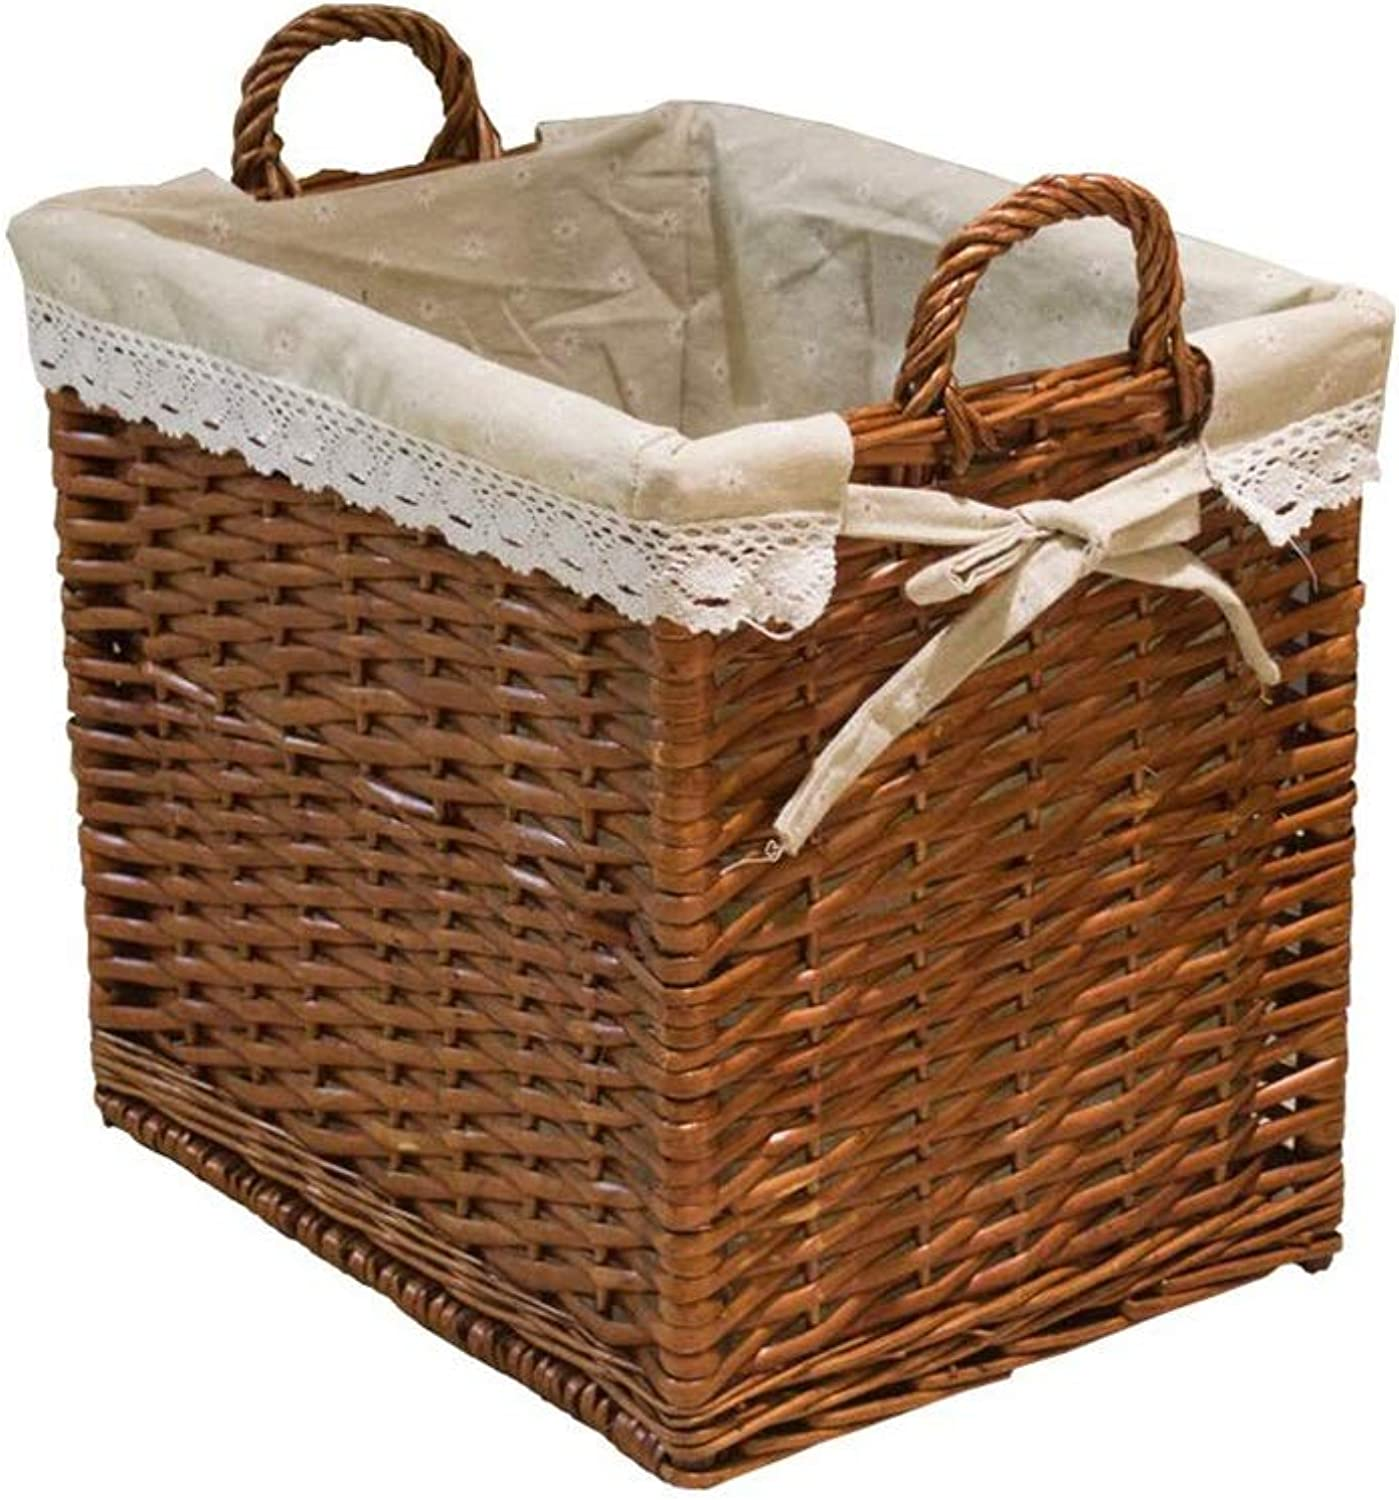 MUMA Storage Baskets with Handle Rattan Weaving Cotton Lining Anti-Static Breathable Easy to Clean Home Supplies (color   Brown, Size   45x33x48cm)